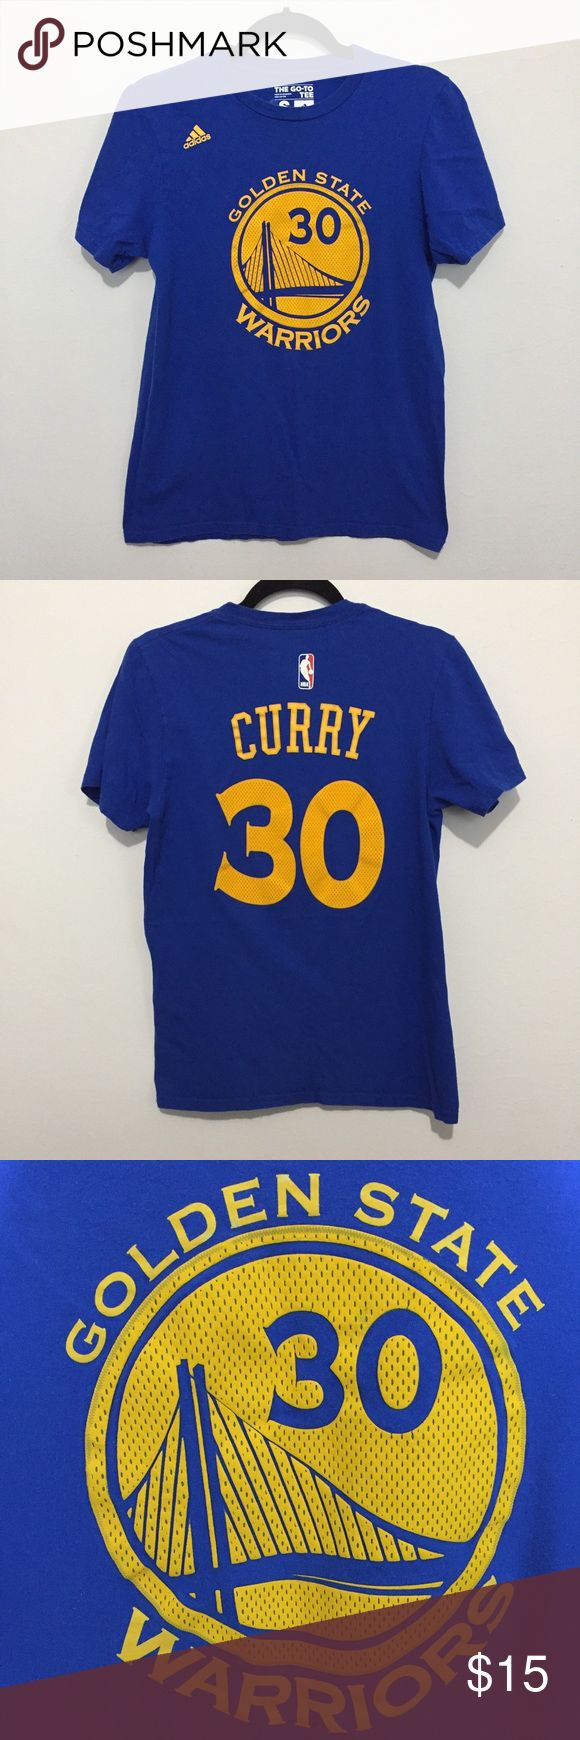 Adidas Go To Tee Golden State Warriors Curry Do you love you some Curry? Then this is the shirt for you! Perfect for home and away games rooting for your team! Great condition, there is some slight wear to the appliques, as pictured. Pit to pit: 18.5 in Length, shoulder to hem: 25.5 in Adidas Tops Tees - Short Sleeve